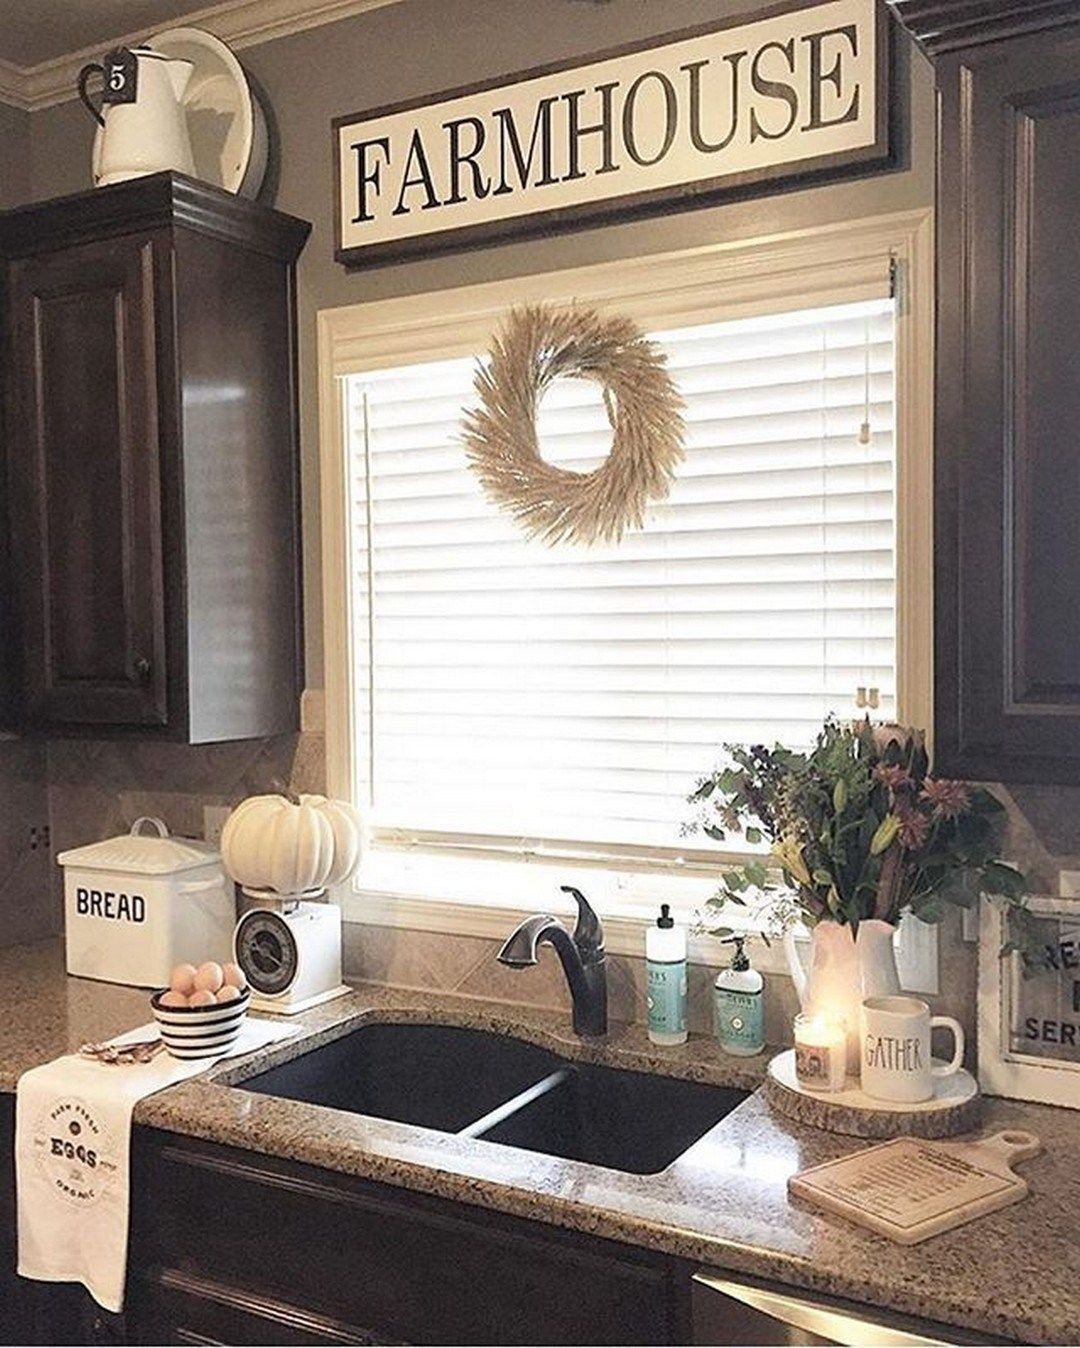 122 cheap easy and simple diy rustic home decor ideas 46 affordable farmhouse kitchen on kitchen decor themes rustic id=29839